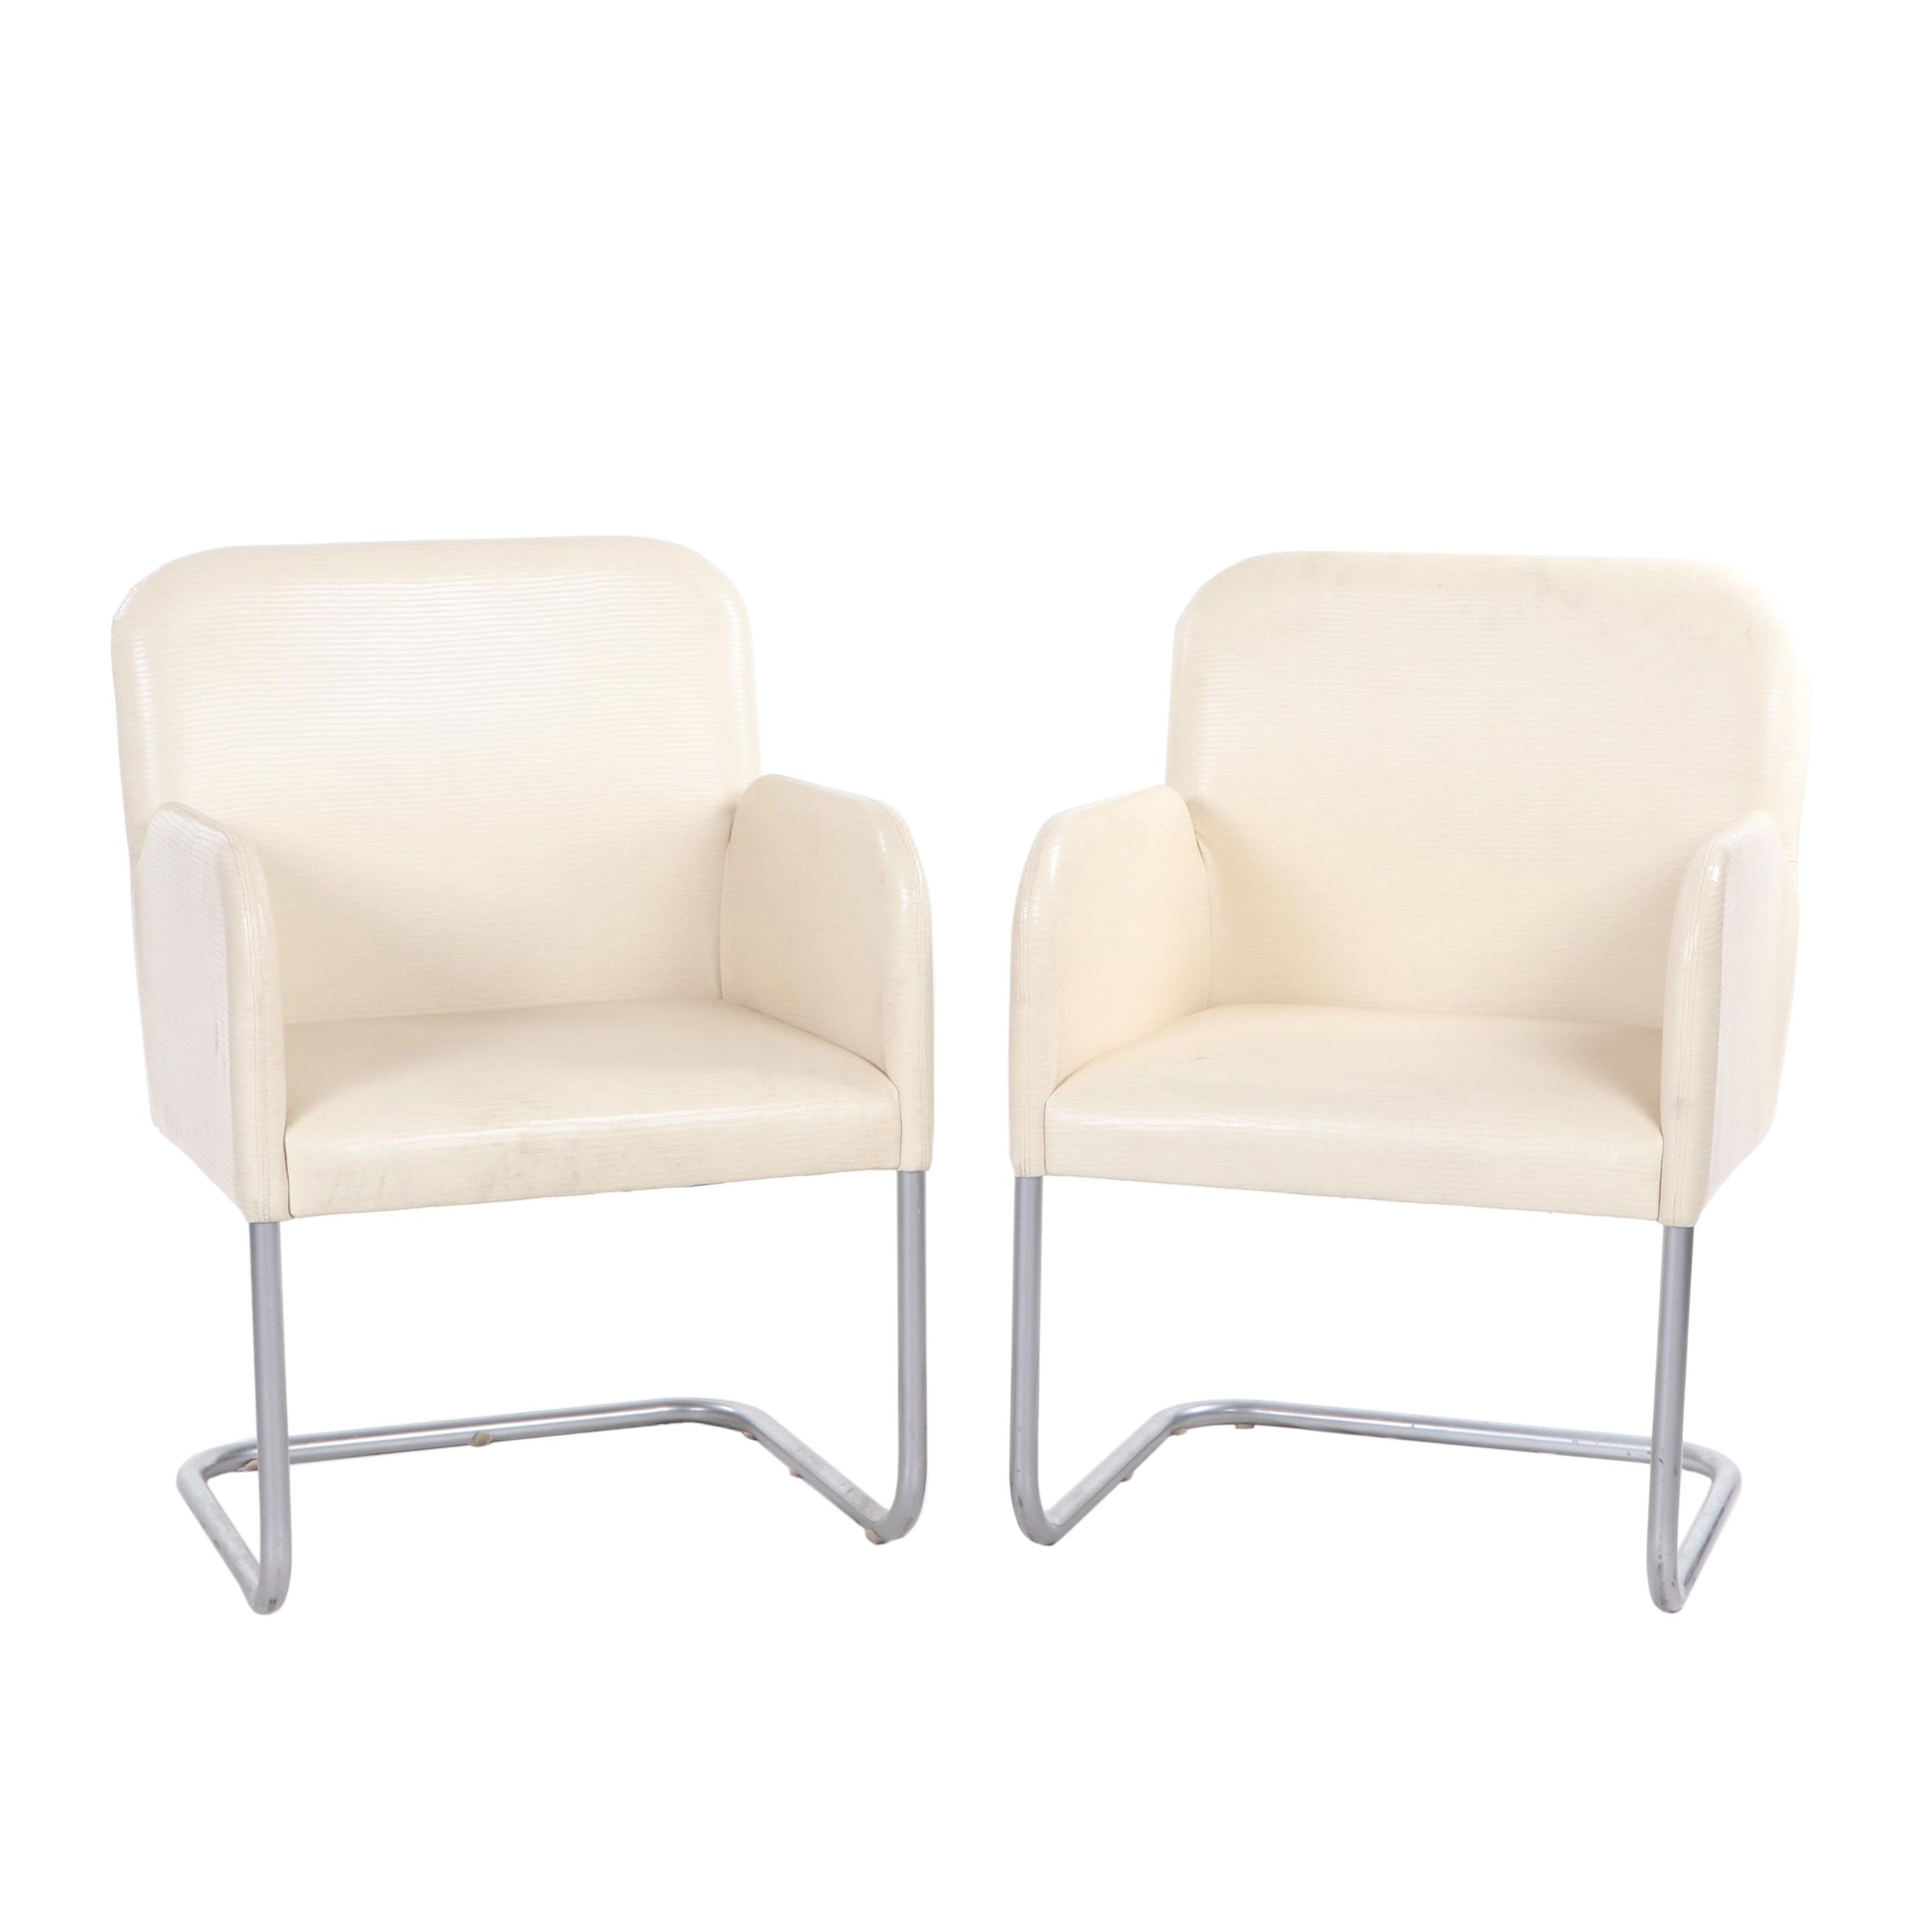 Modern Style Cantilever Armchairs, Mid to Late 20th Century